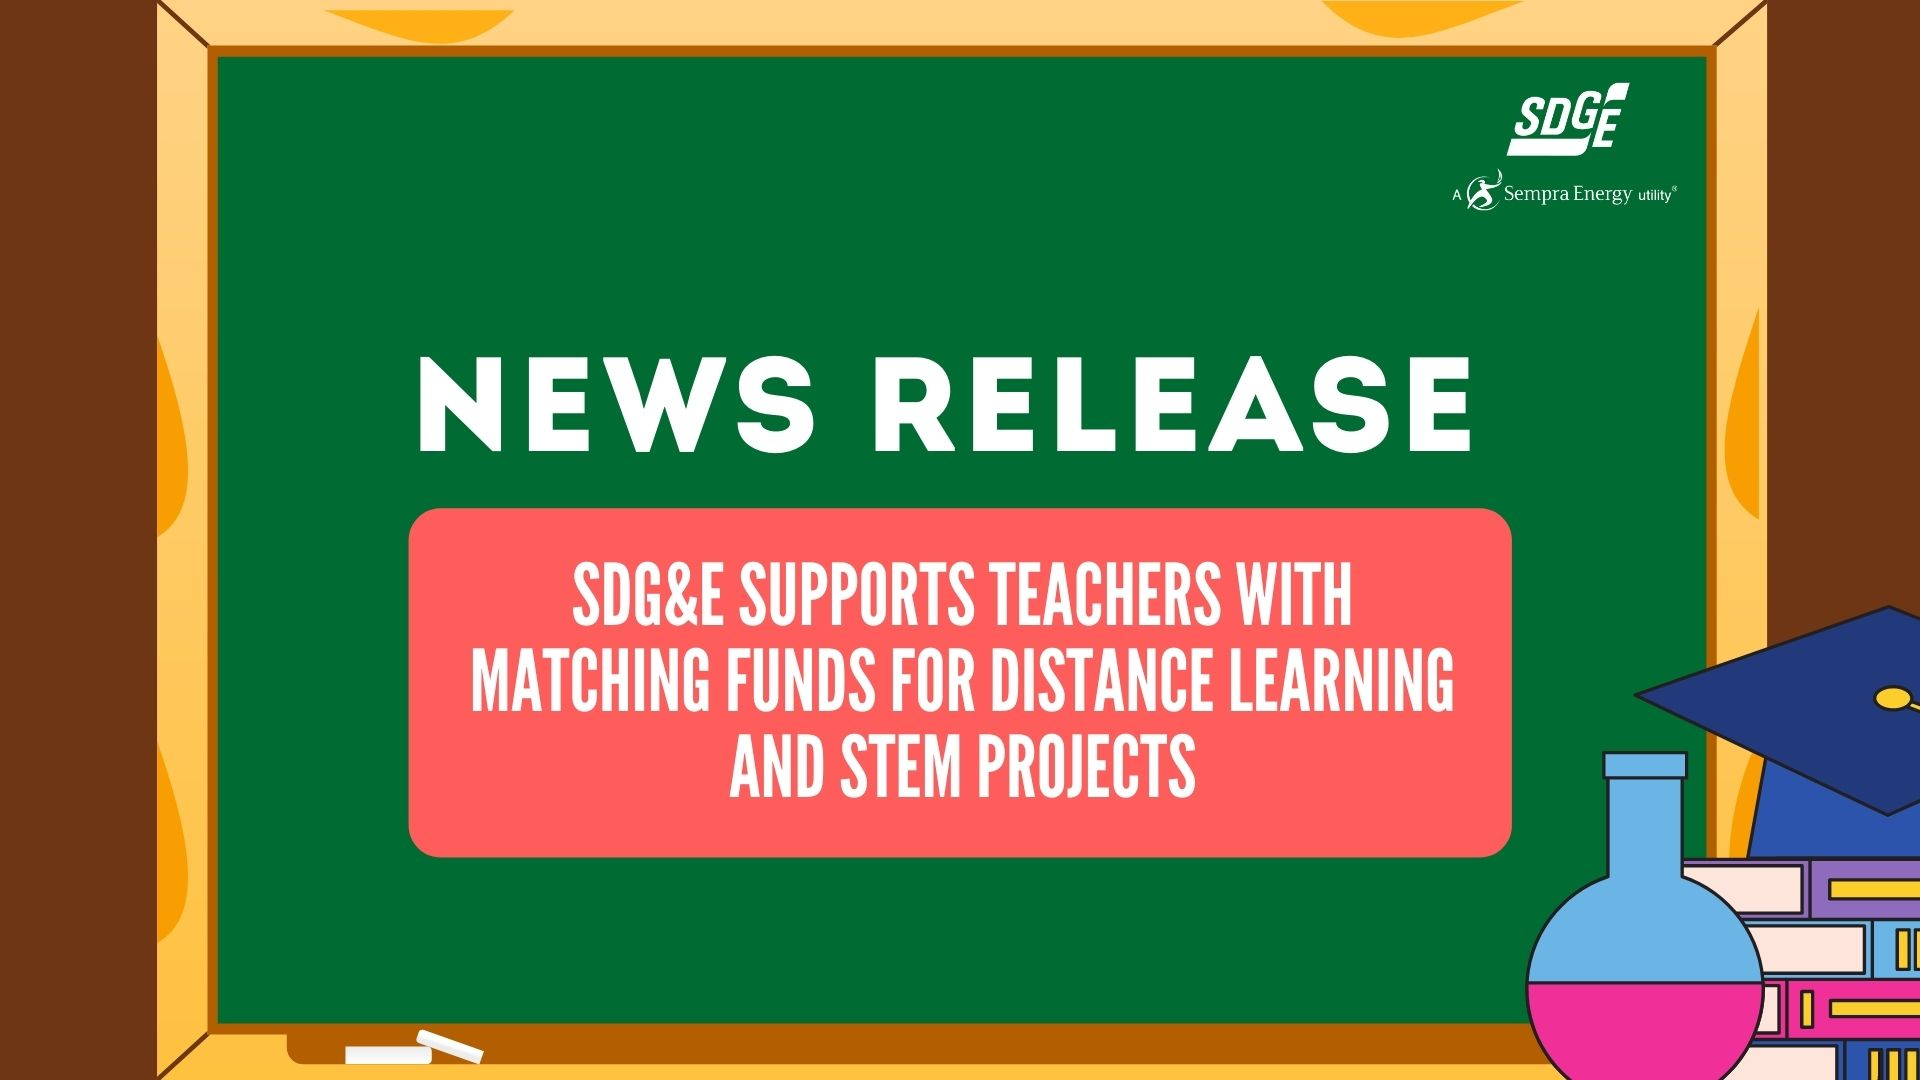 Sdg E Supports Teachers With Matching Funds For Distance Learning And Stem Projects Sdge San Diego Gas Electric News Center